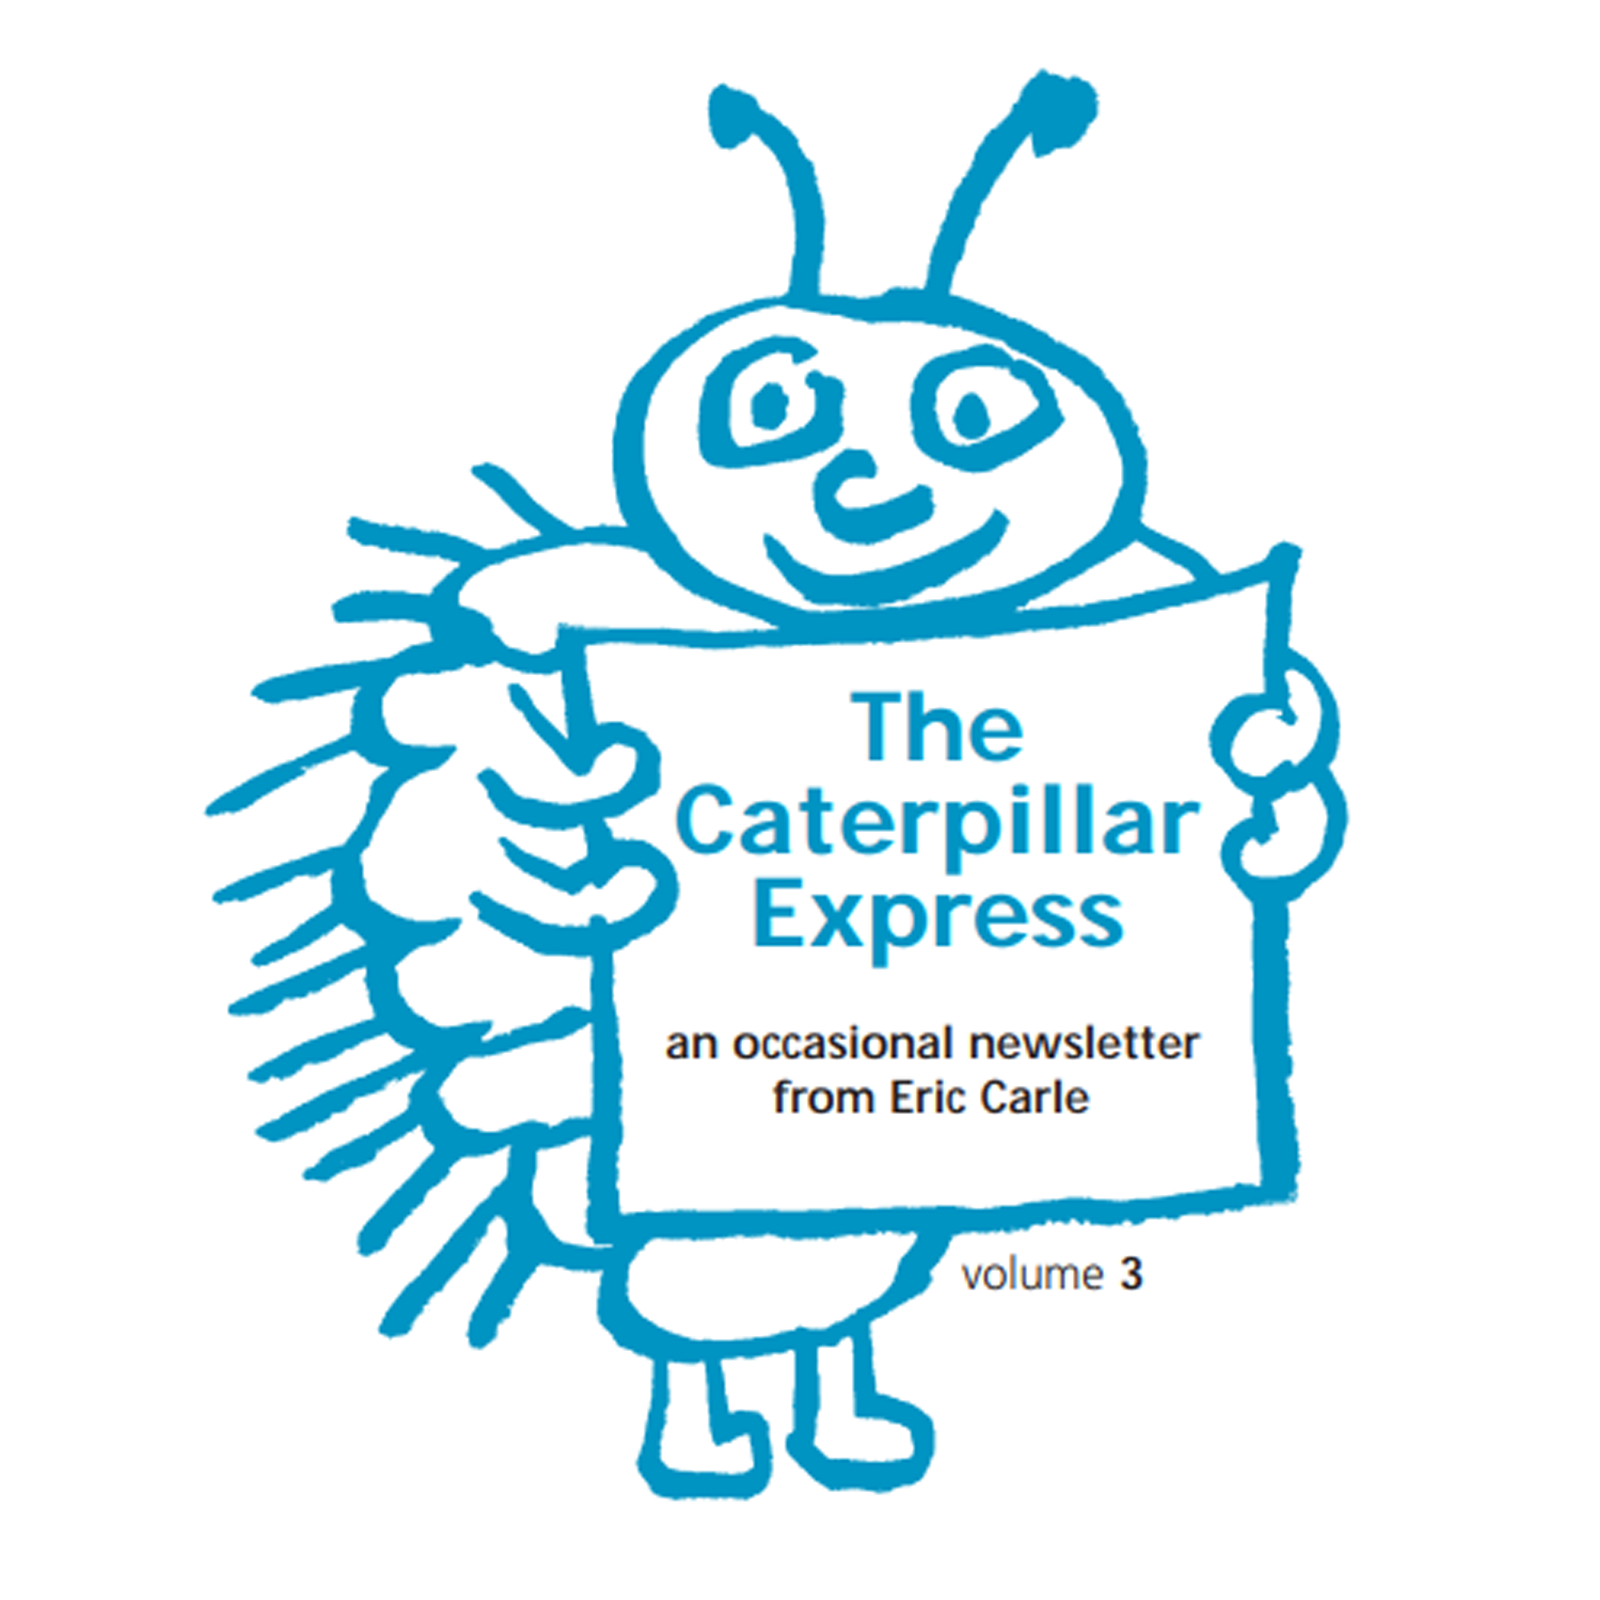 Caterpillar Express Volume 3